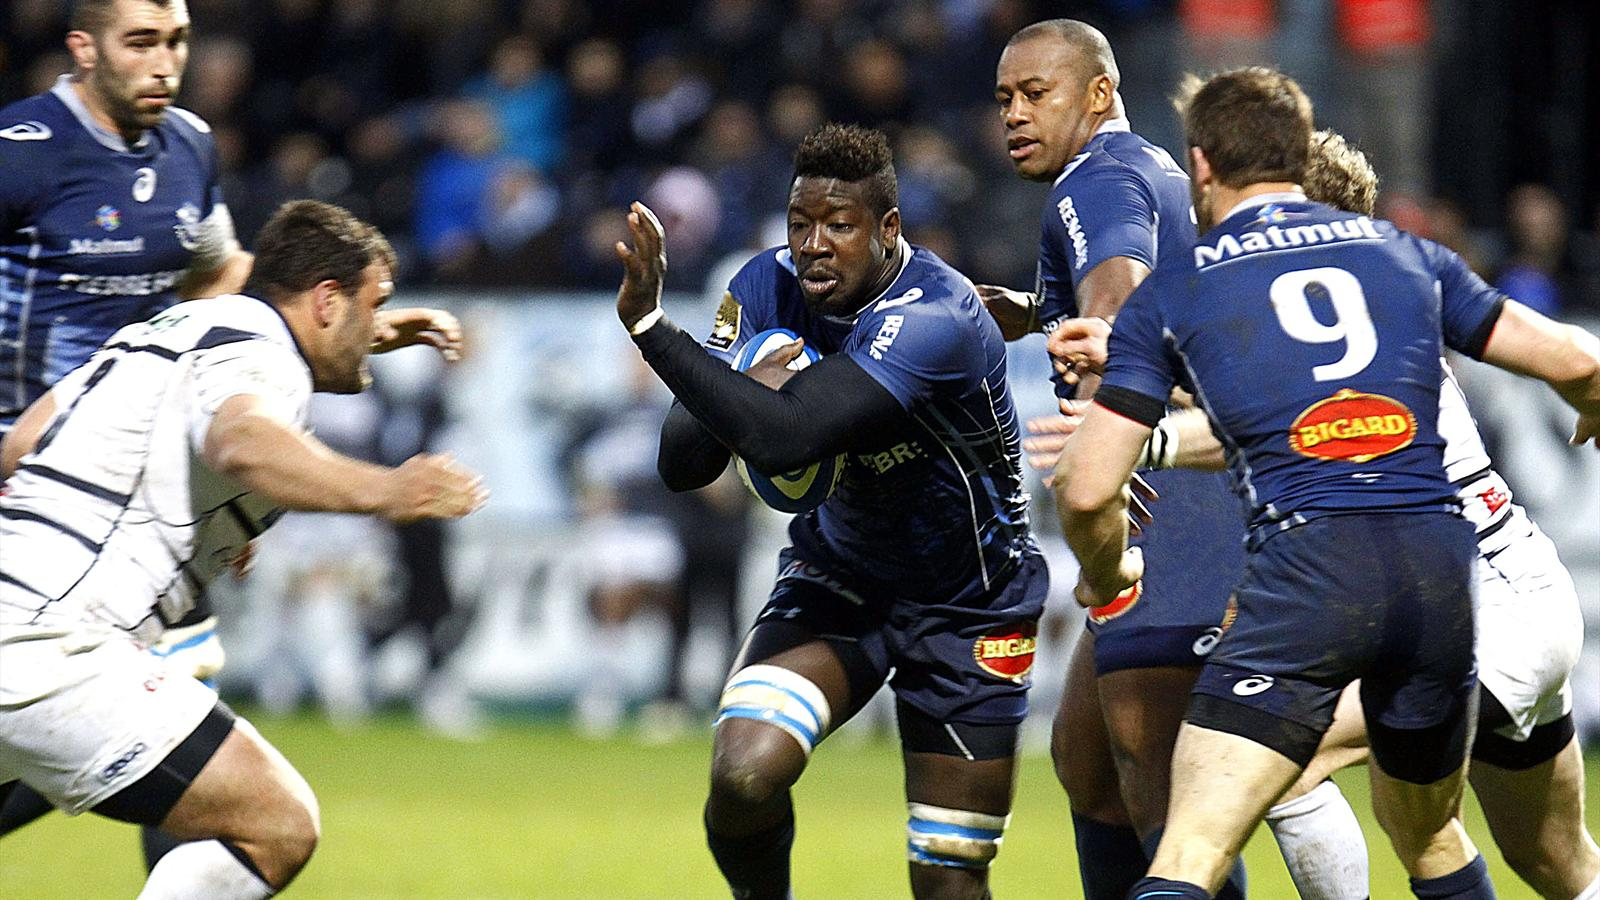 Rugby Top 14: CA Brive vs Castres Olympique en direct live streaming